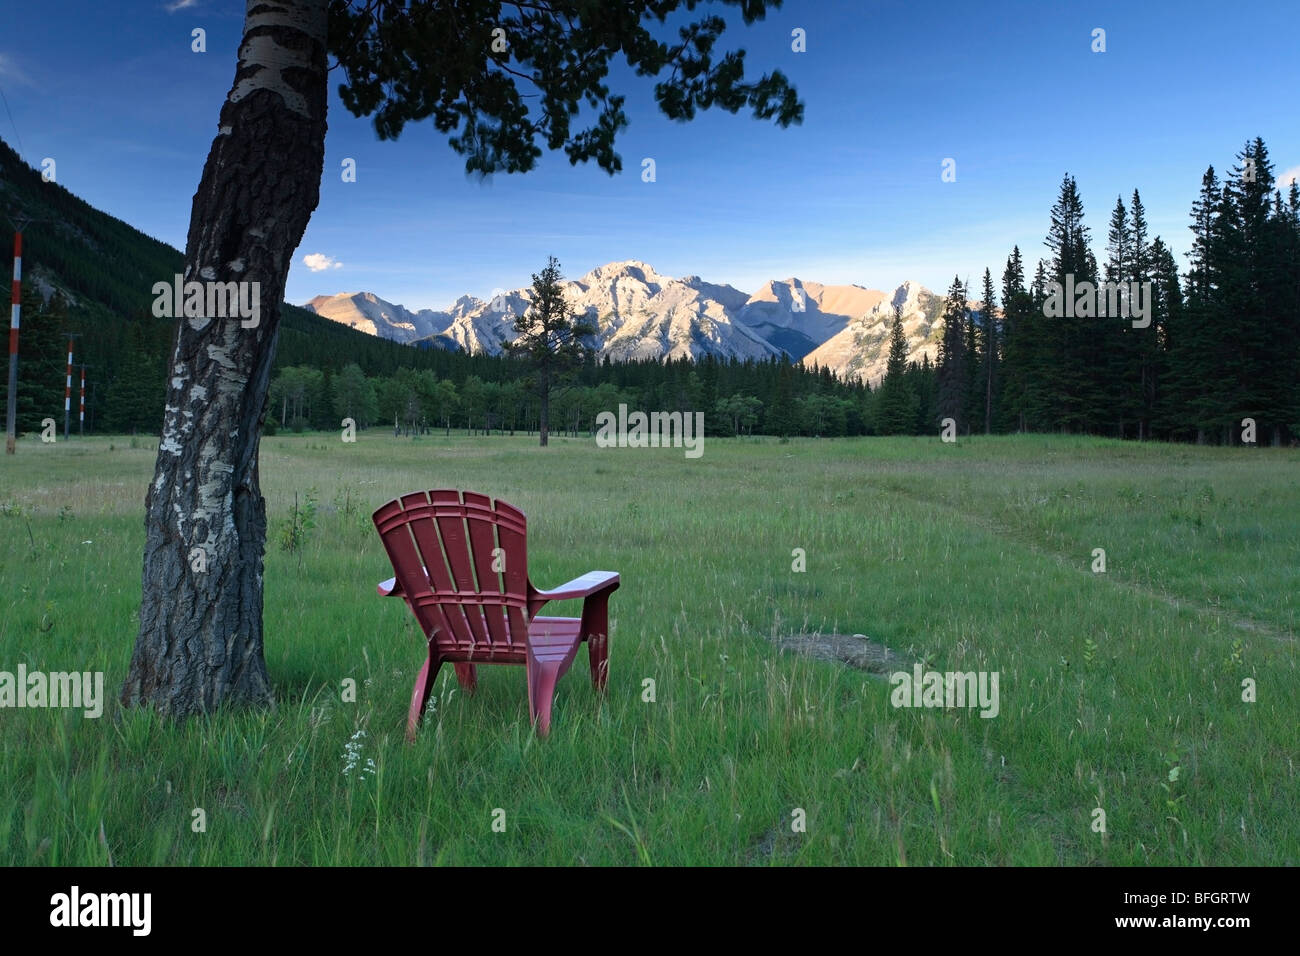 Chair in meadow overlooking Fairholm mountain range. Banff National Park, Alberta, Canada - Stock Image